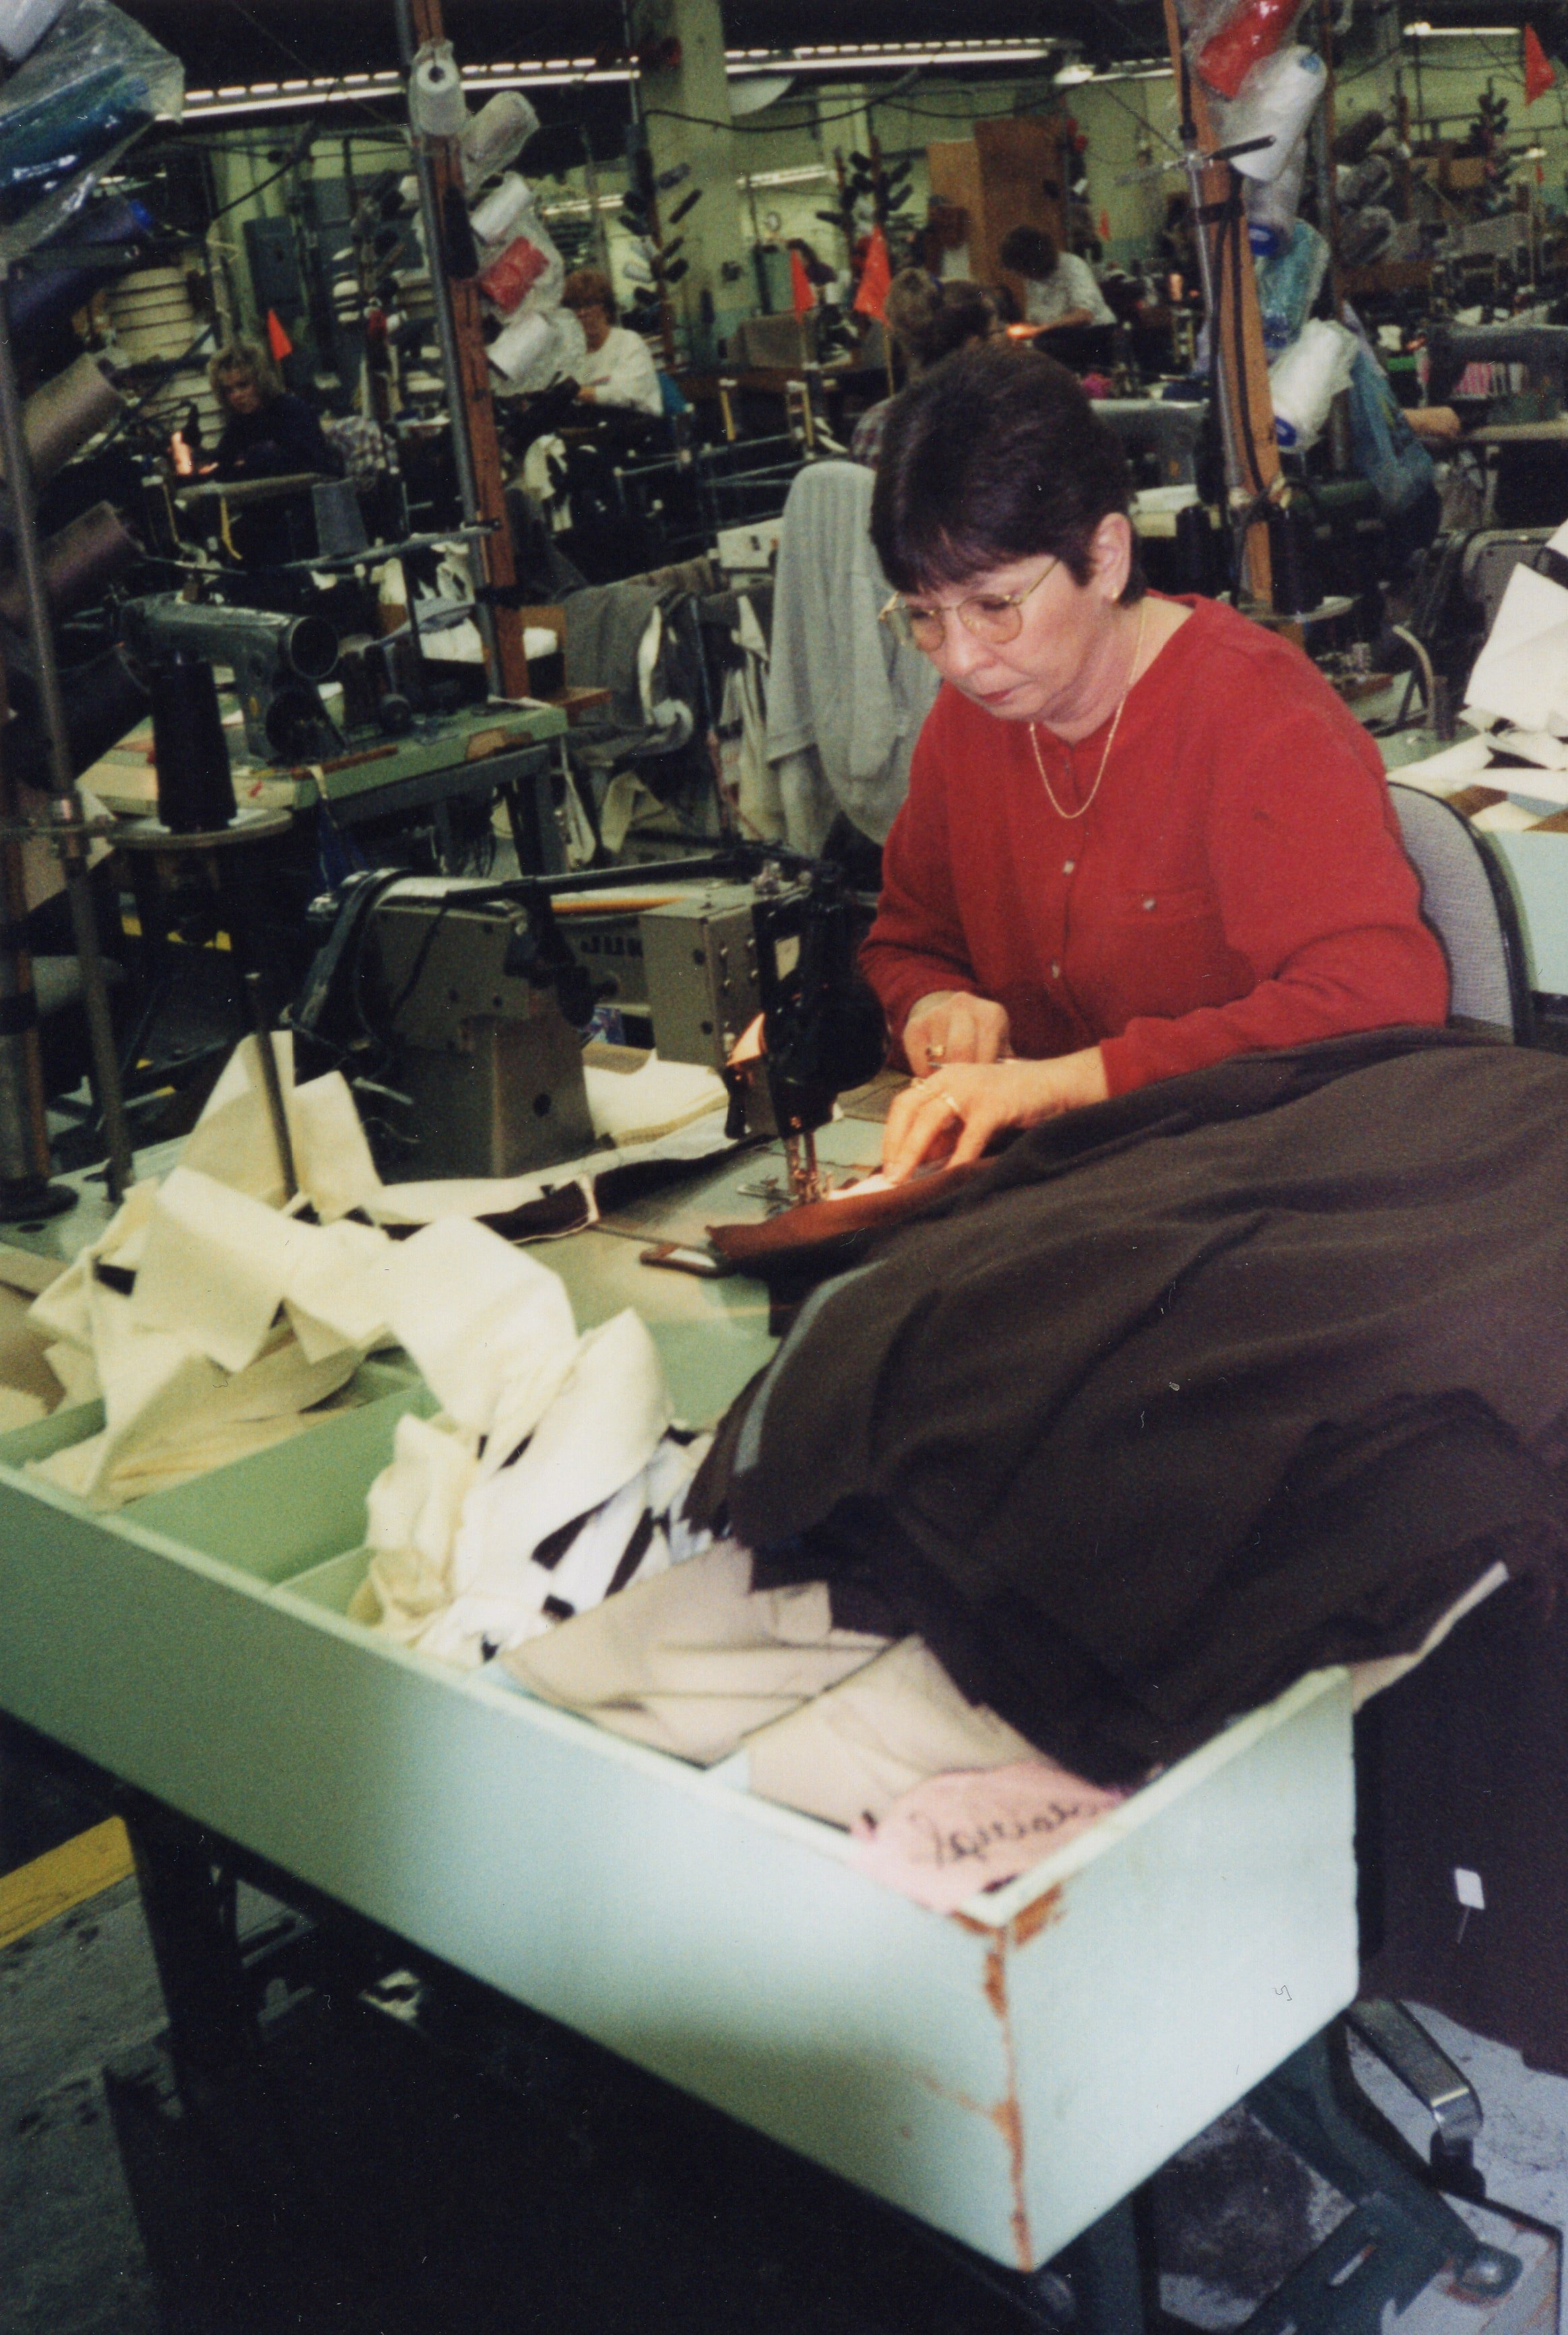 Corbin Ltd. Machine Operator Sheila Graham sewing front pockets on trousers, Huntington, WV